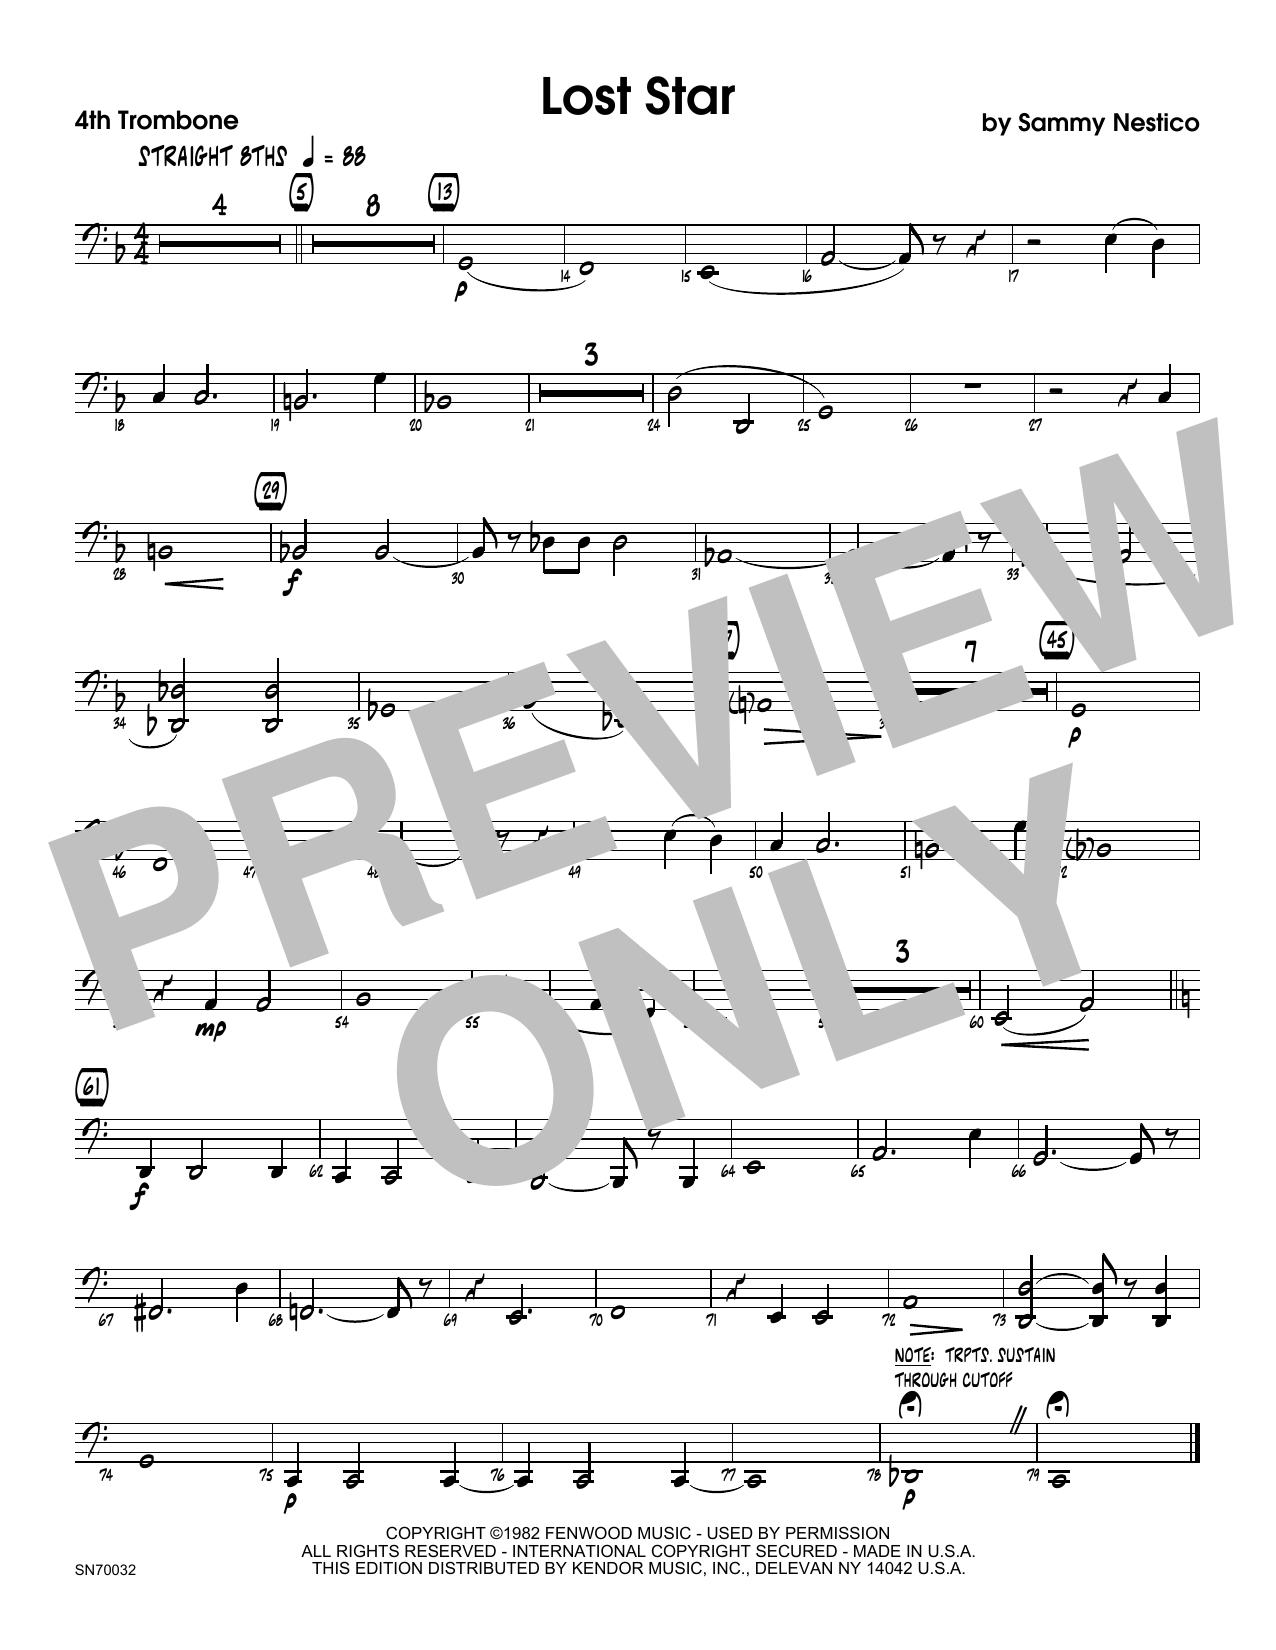 Lost Star - 4th Trombone Sheet Music